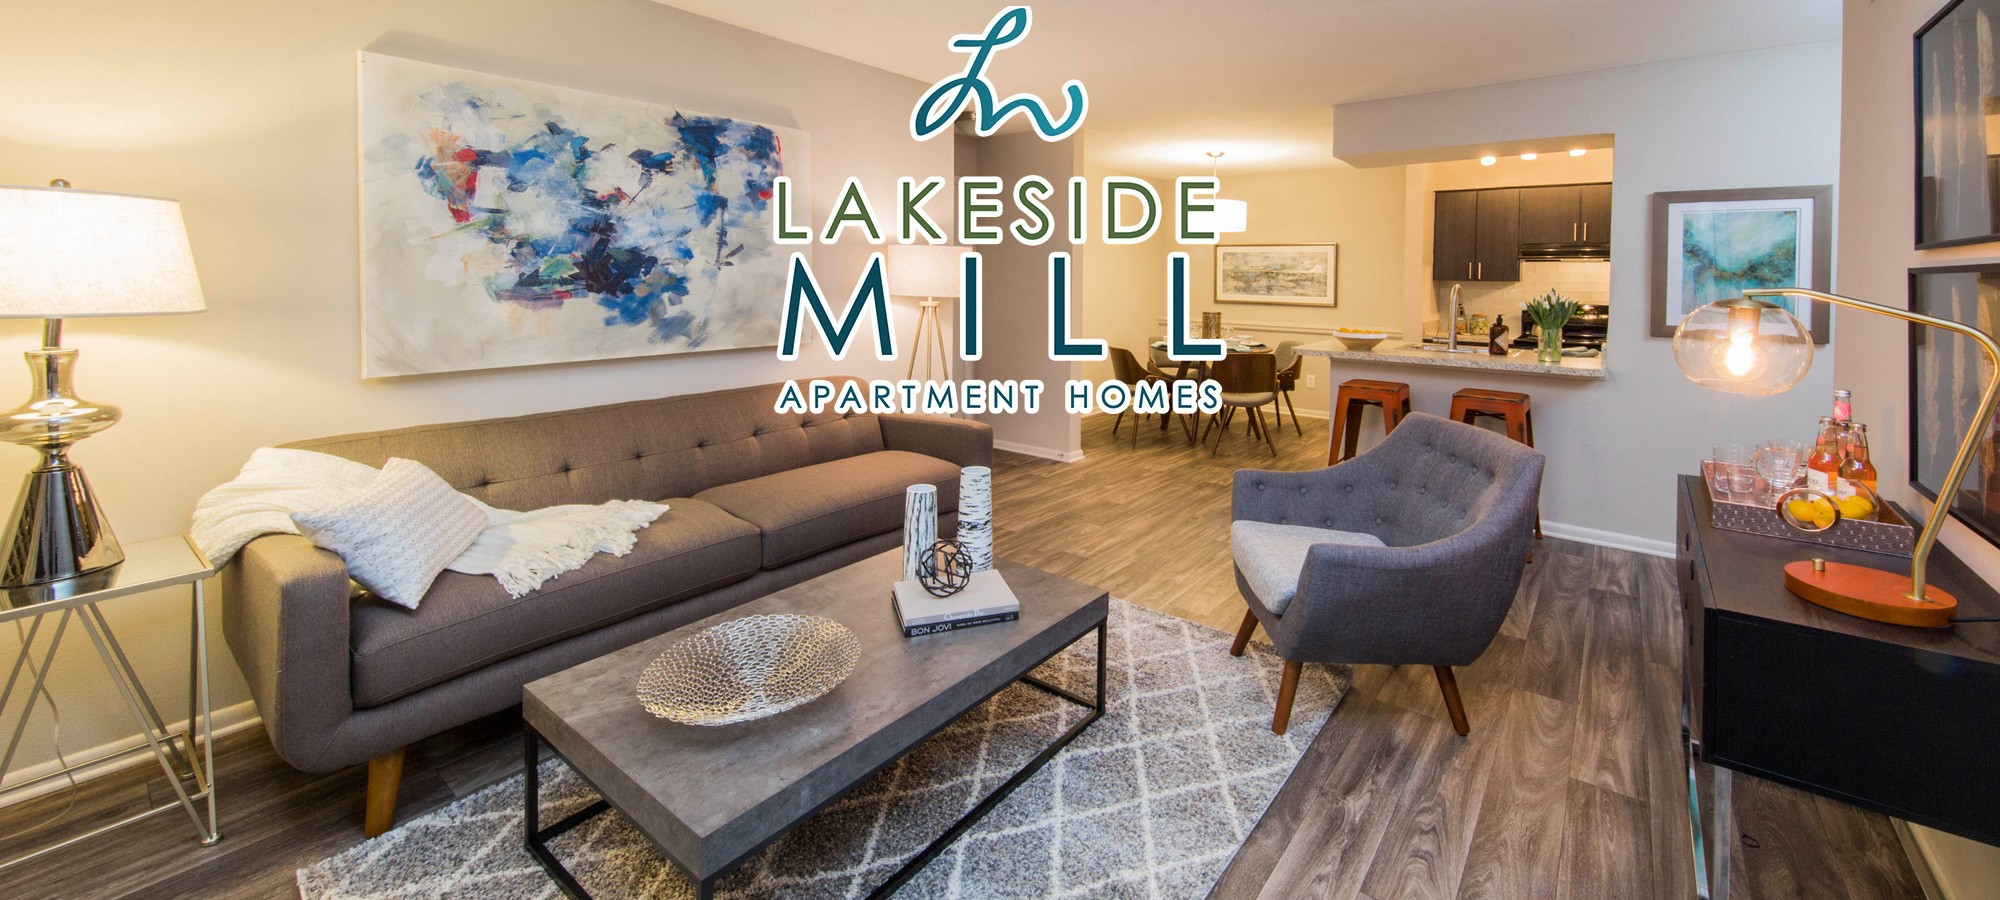 Apartments In Lakeside Mill.  Painters Mill Apartments Owings Mills